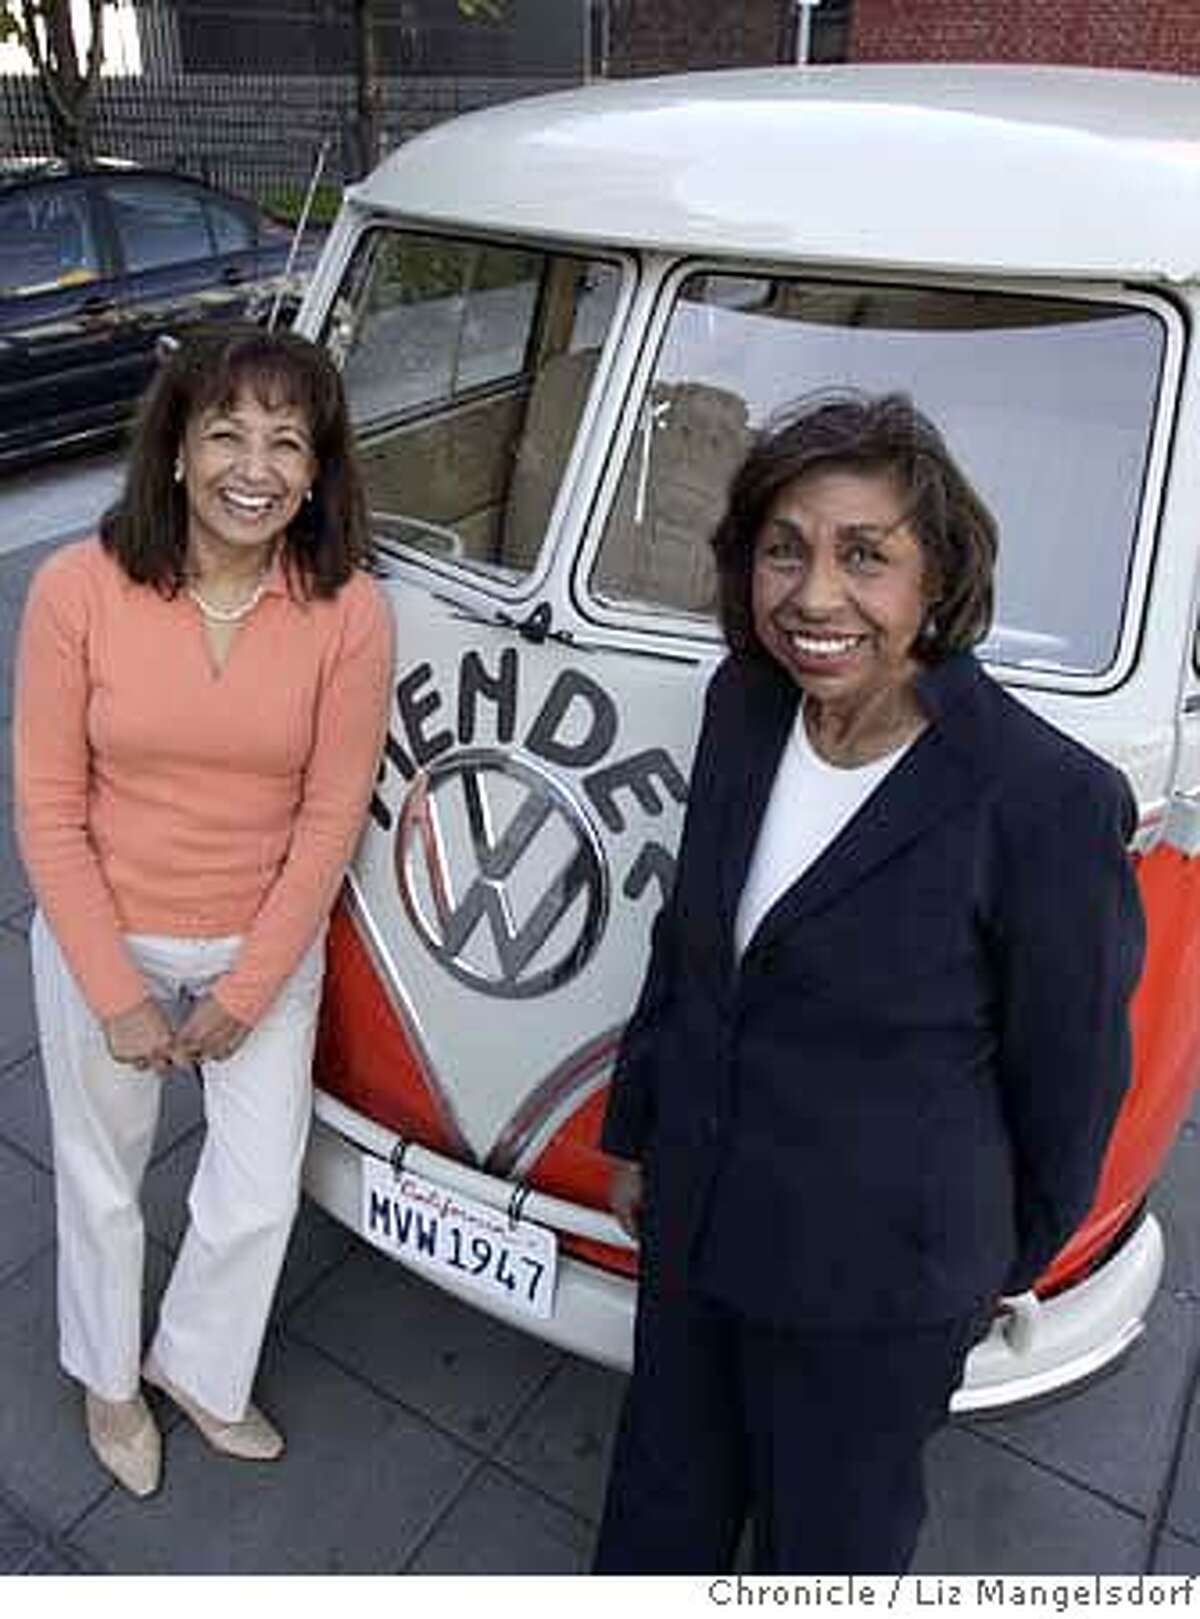 Sylvia Mendez, right, and Sandra Robbie, left, in front of the VW Bus that Robbie is driving cross country to promote her new documentary about the court case known as Mendez v.Westminster. Sylvia Mendez's parents brought a case before the Federal Court on behalf of their children regarding segregated schools in California. Photo taken in front of the Federal Courthouse in San Francisco on May 8, 2007. Liz Mangelsdorf/ The Chronicle